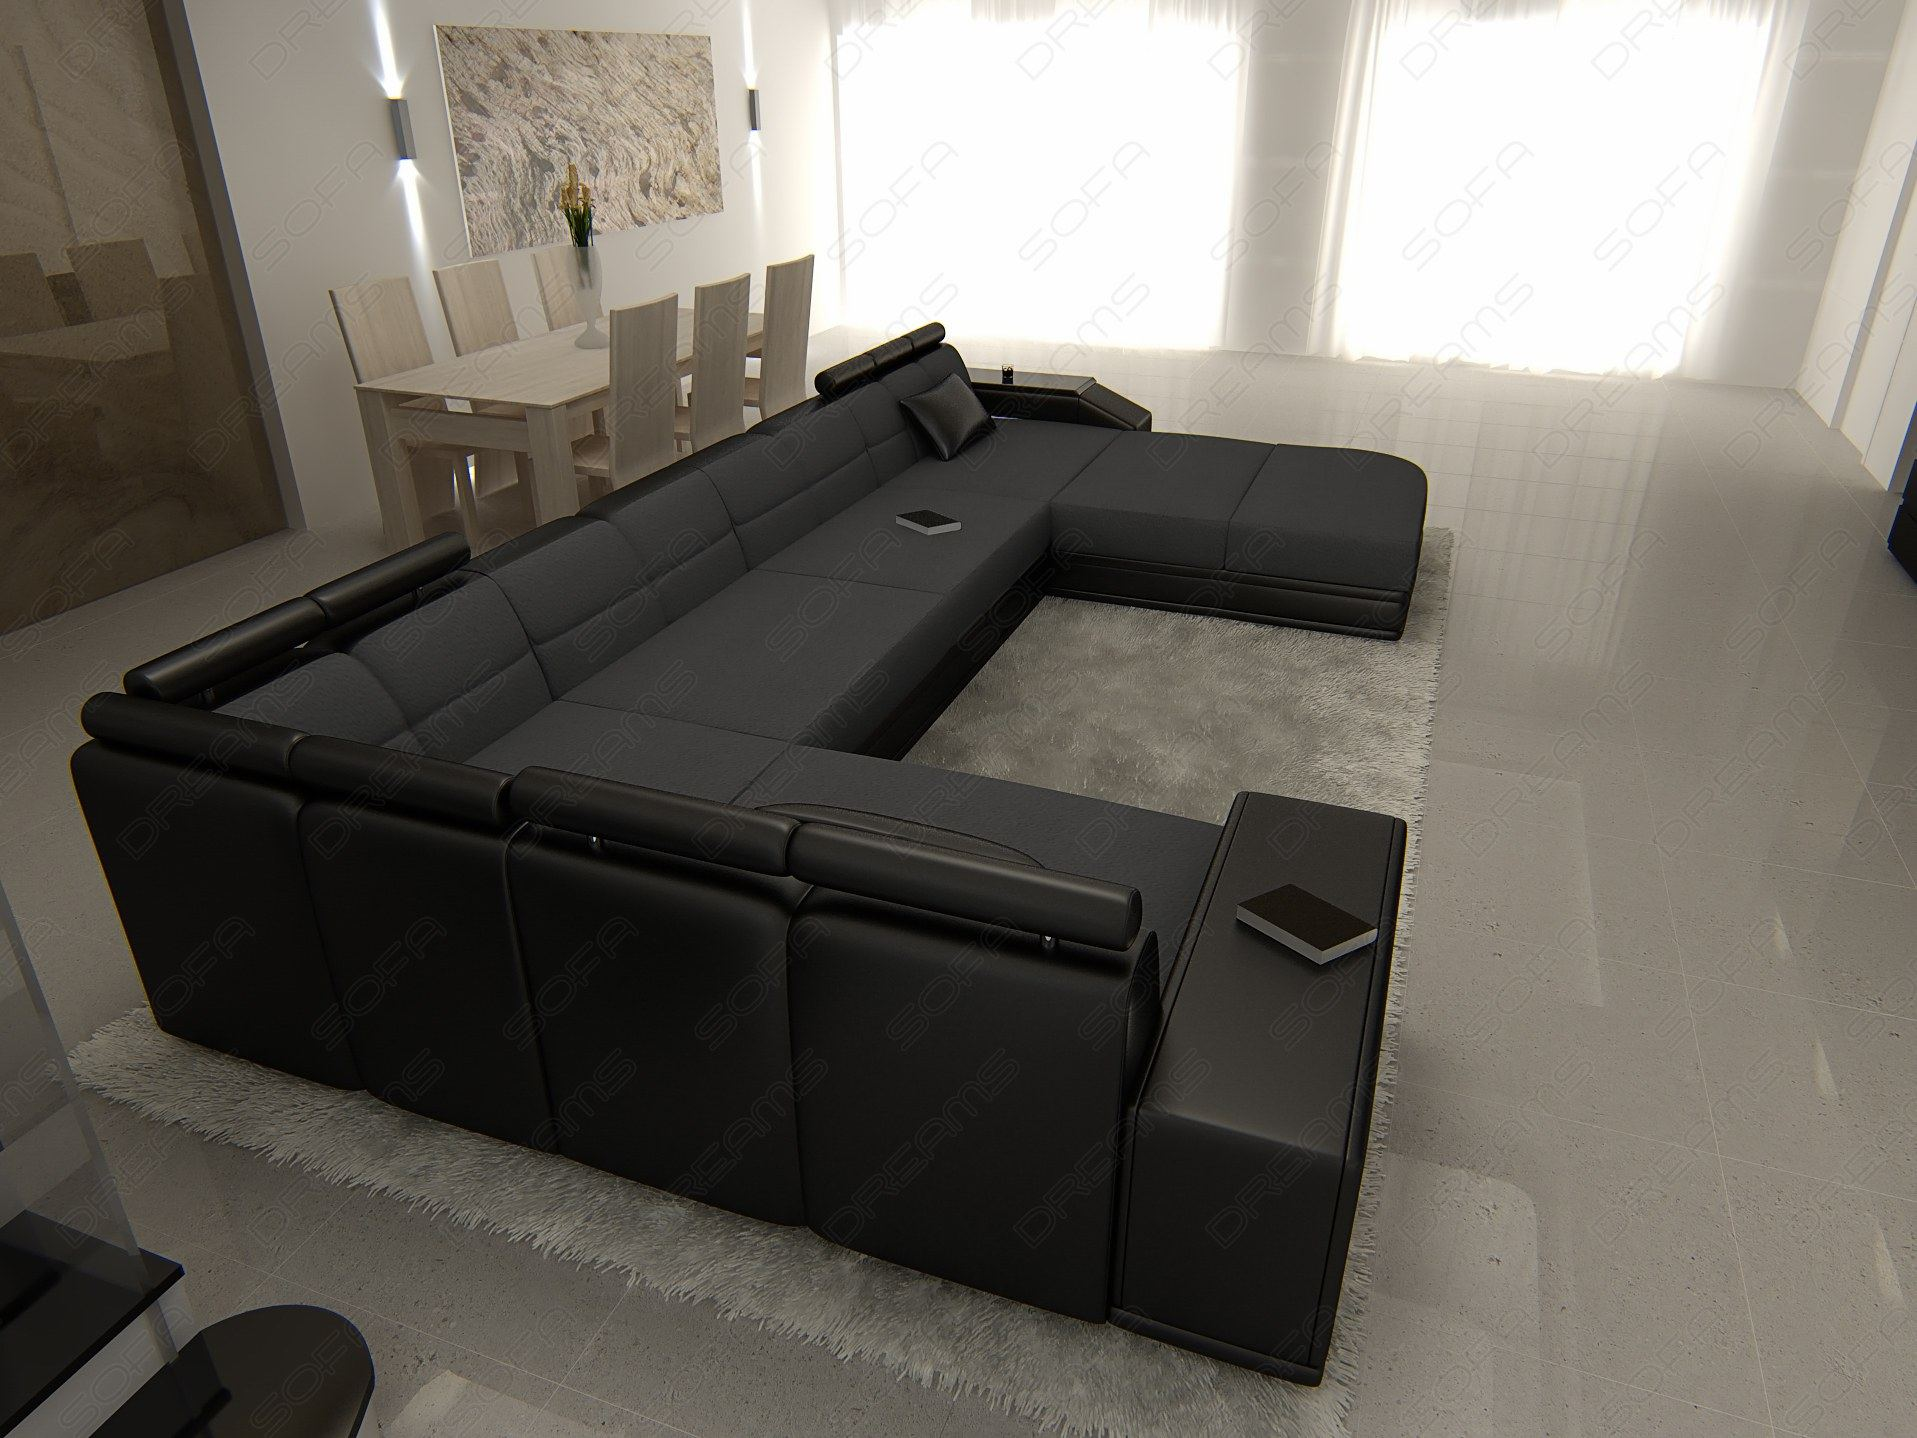 fabric sofa venice u shaped pads sofa dark gray leather. Black Bedroom Furniture Sets. Home Design Ideas